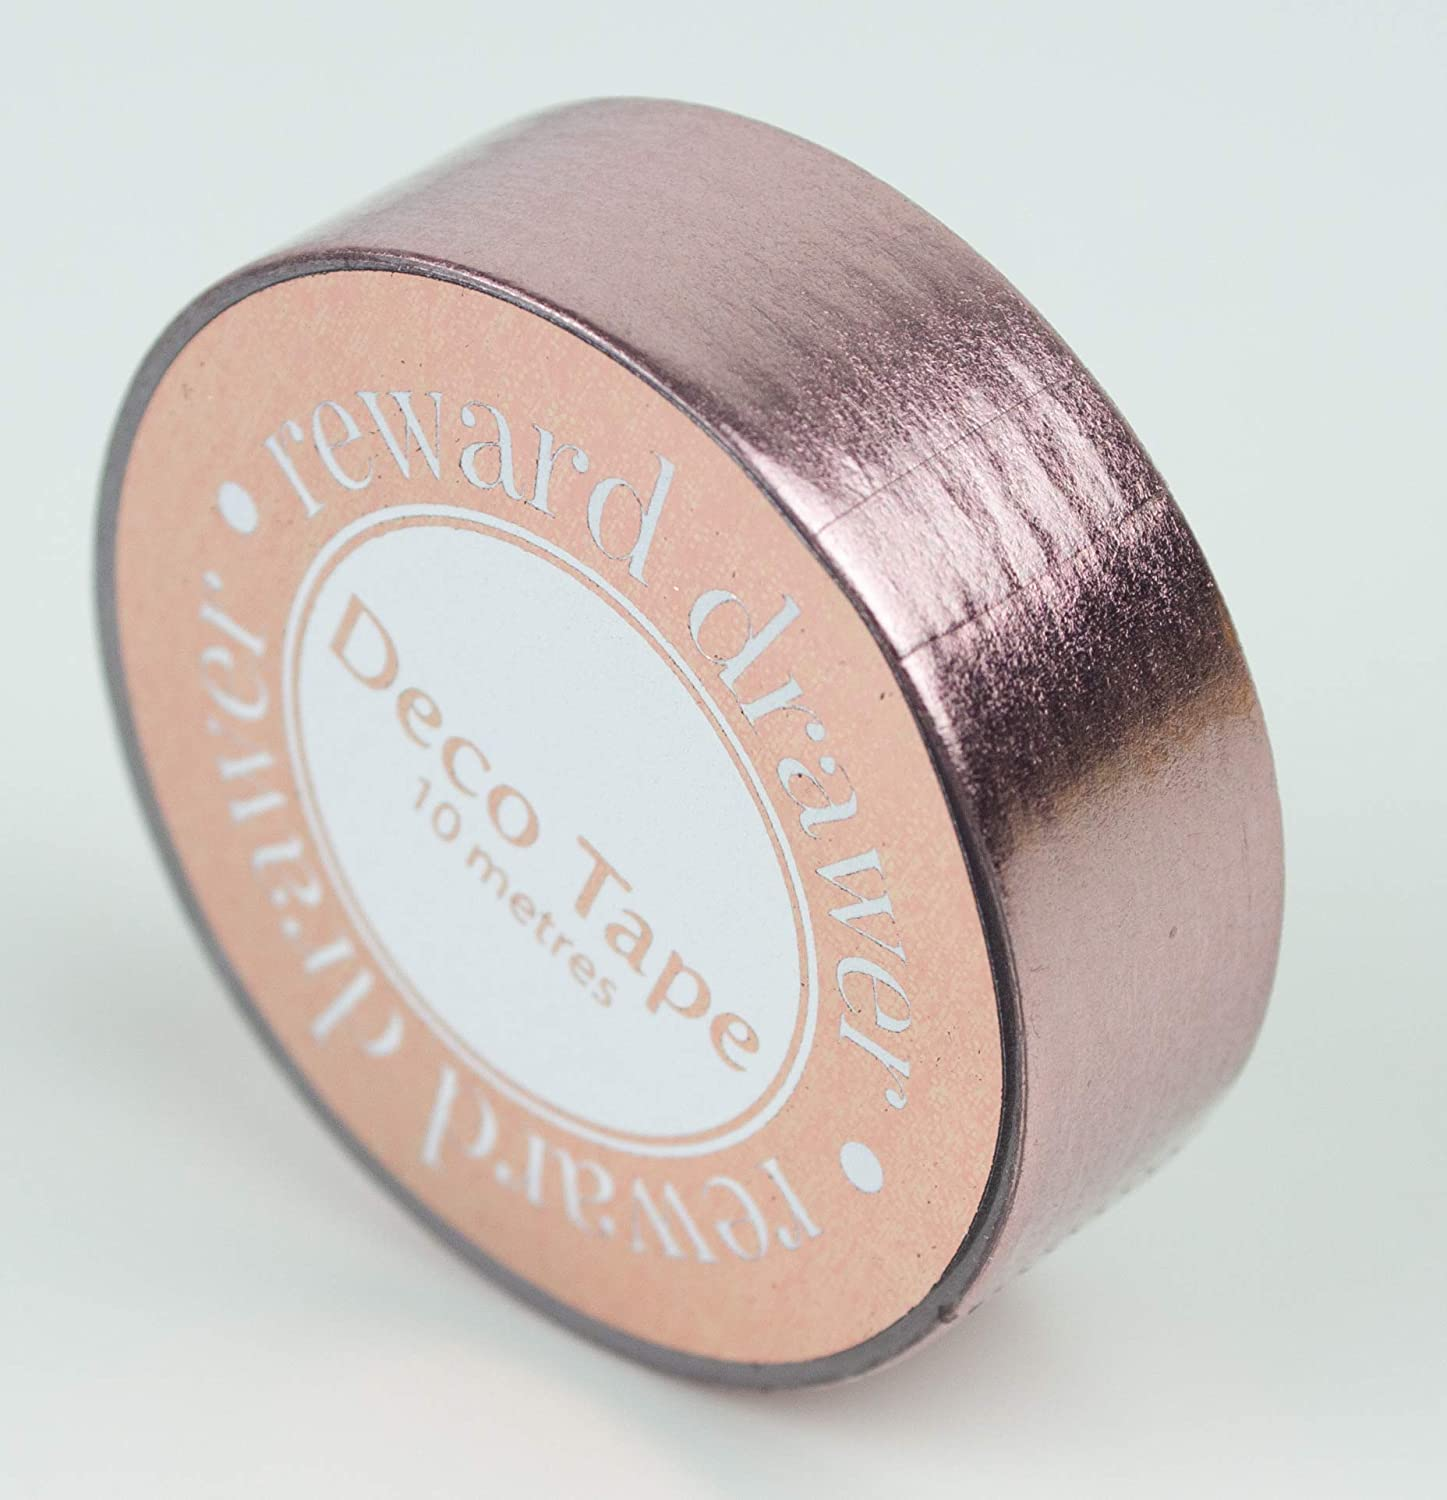 Rose Gold Decorative foil washi Tape roll in Metallic Pink - Generous 10 metre Long roll x 15mm Wide - for Decorating Wedding Stationery, journals, Planners, scrapbooks, Gift wrap and envelopes